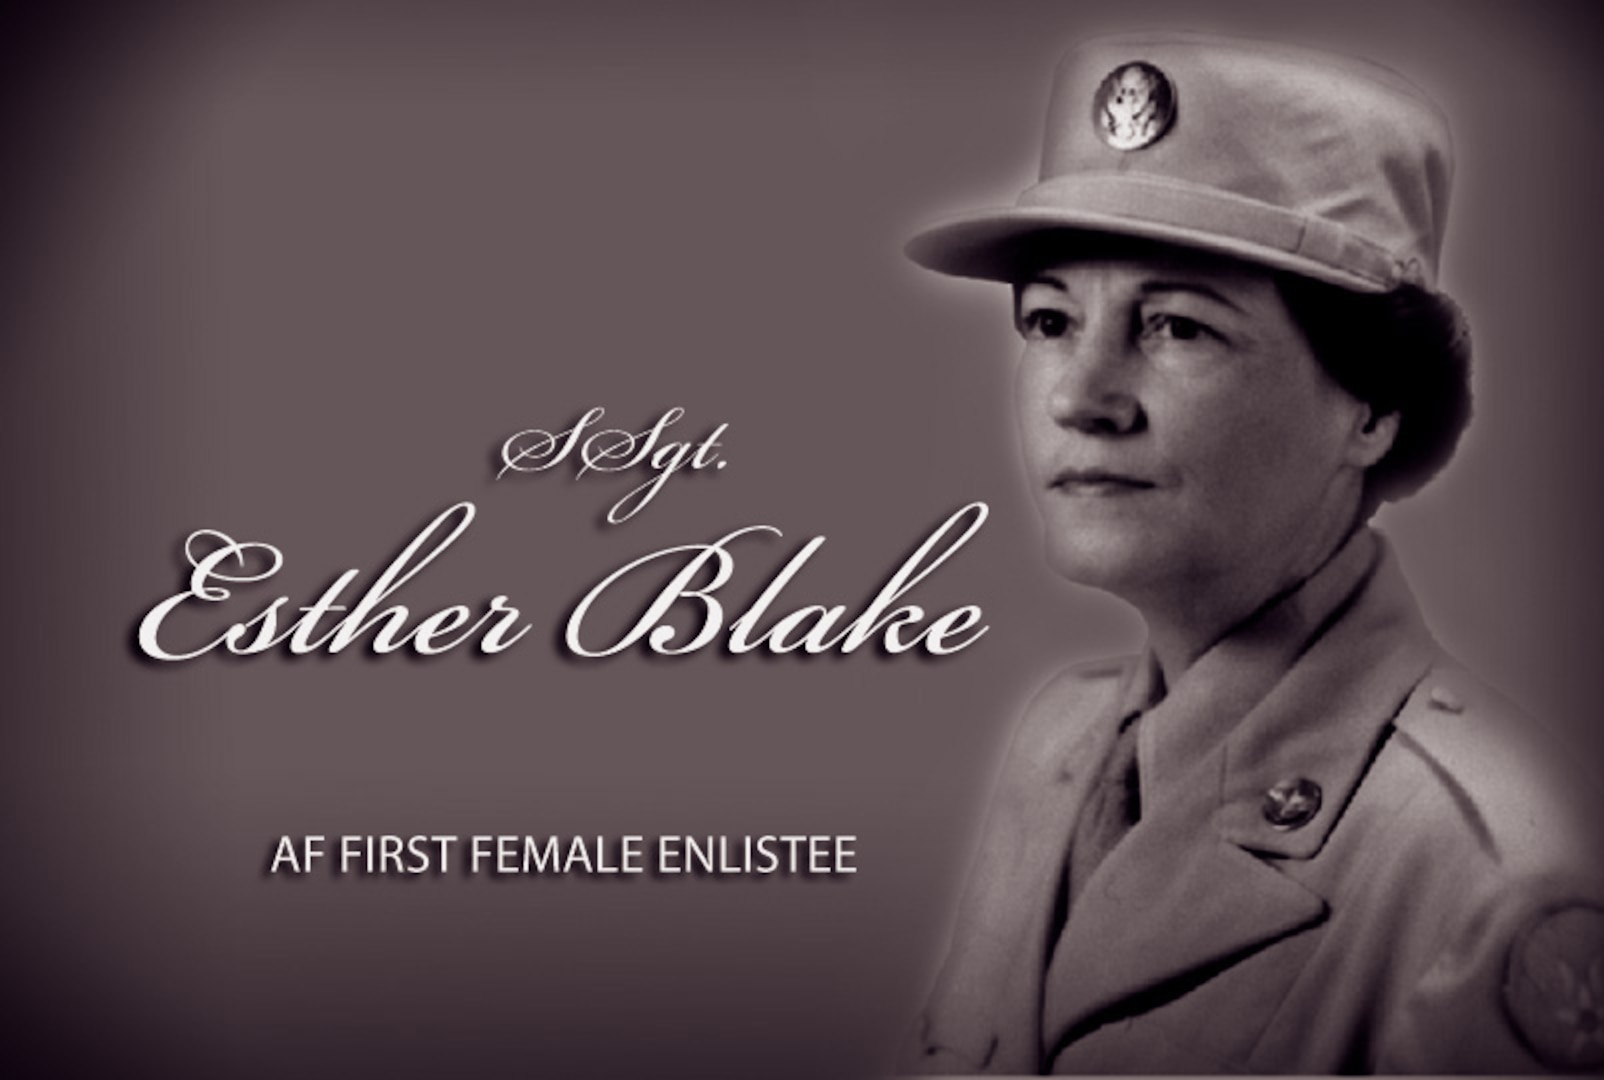 Esther McGowin Blake has the distinction of being the first woman to serve in the U.S. Air Force. She enlisted July 8, 1948, on the first minute of the first hour of the first day regular U.S. Air Force duty was authorized for women.